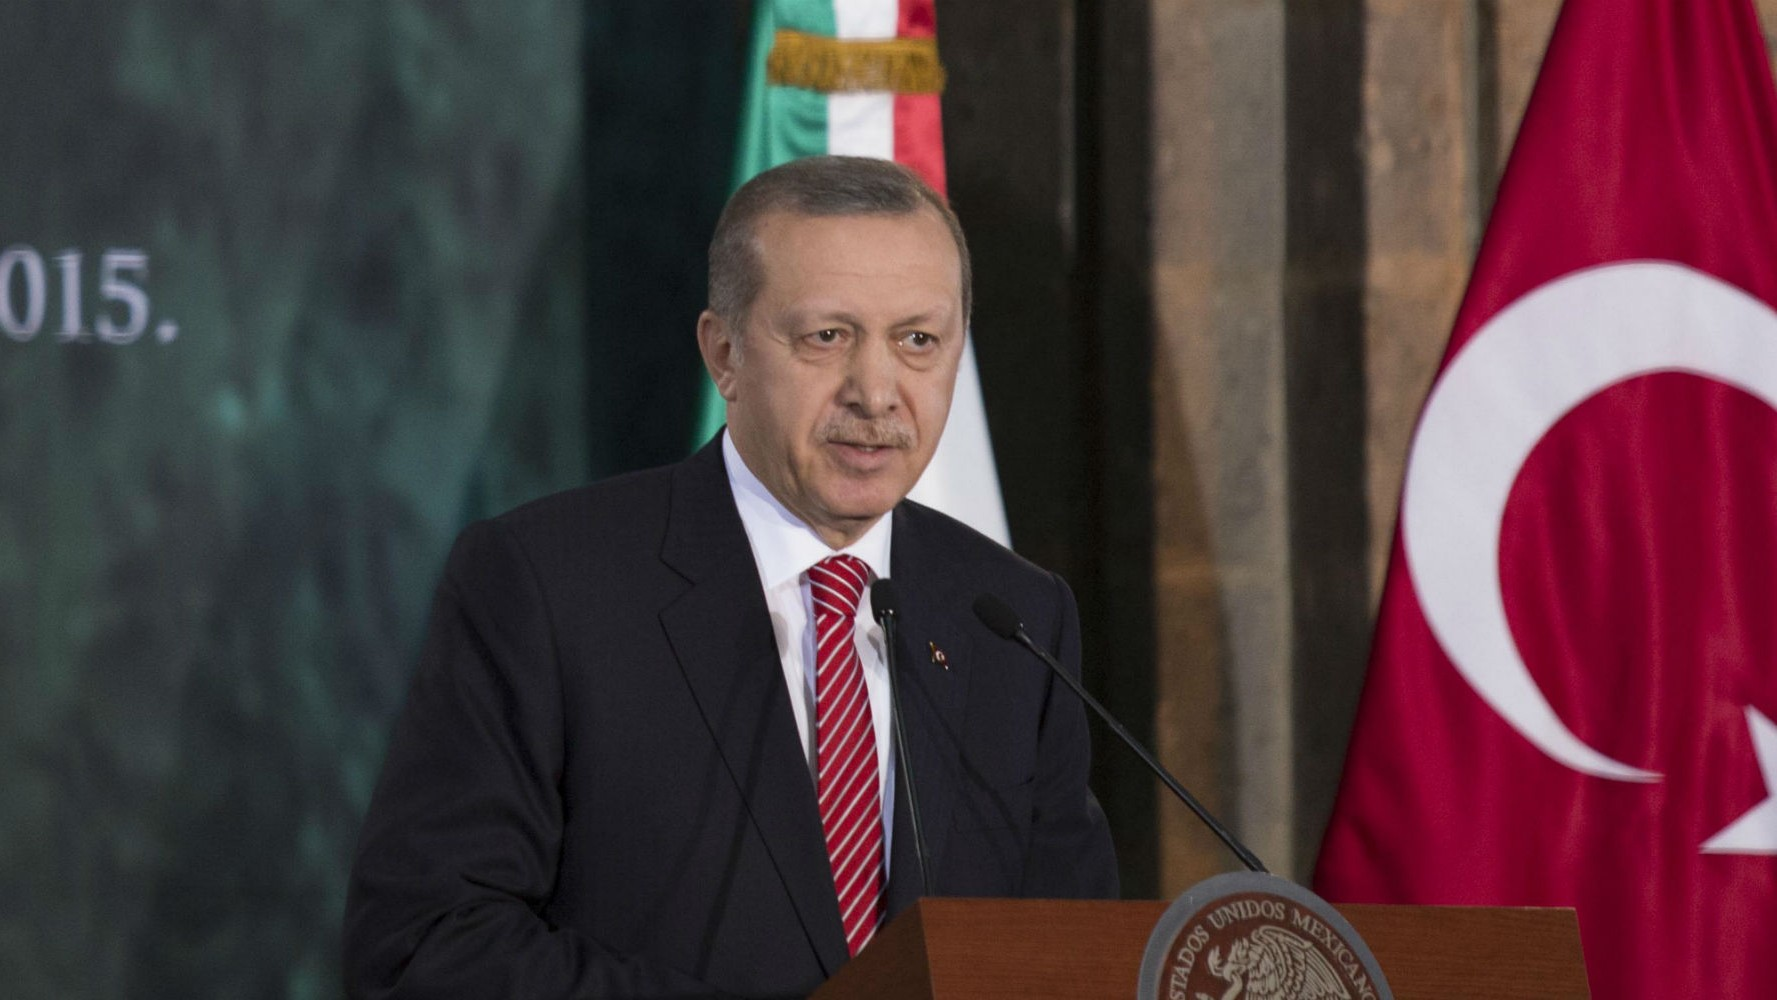 Turkey Doubles Down on Censorship With Block on VPNs, Tor